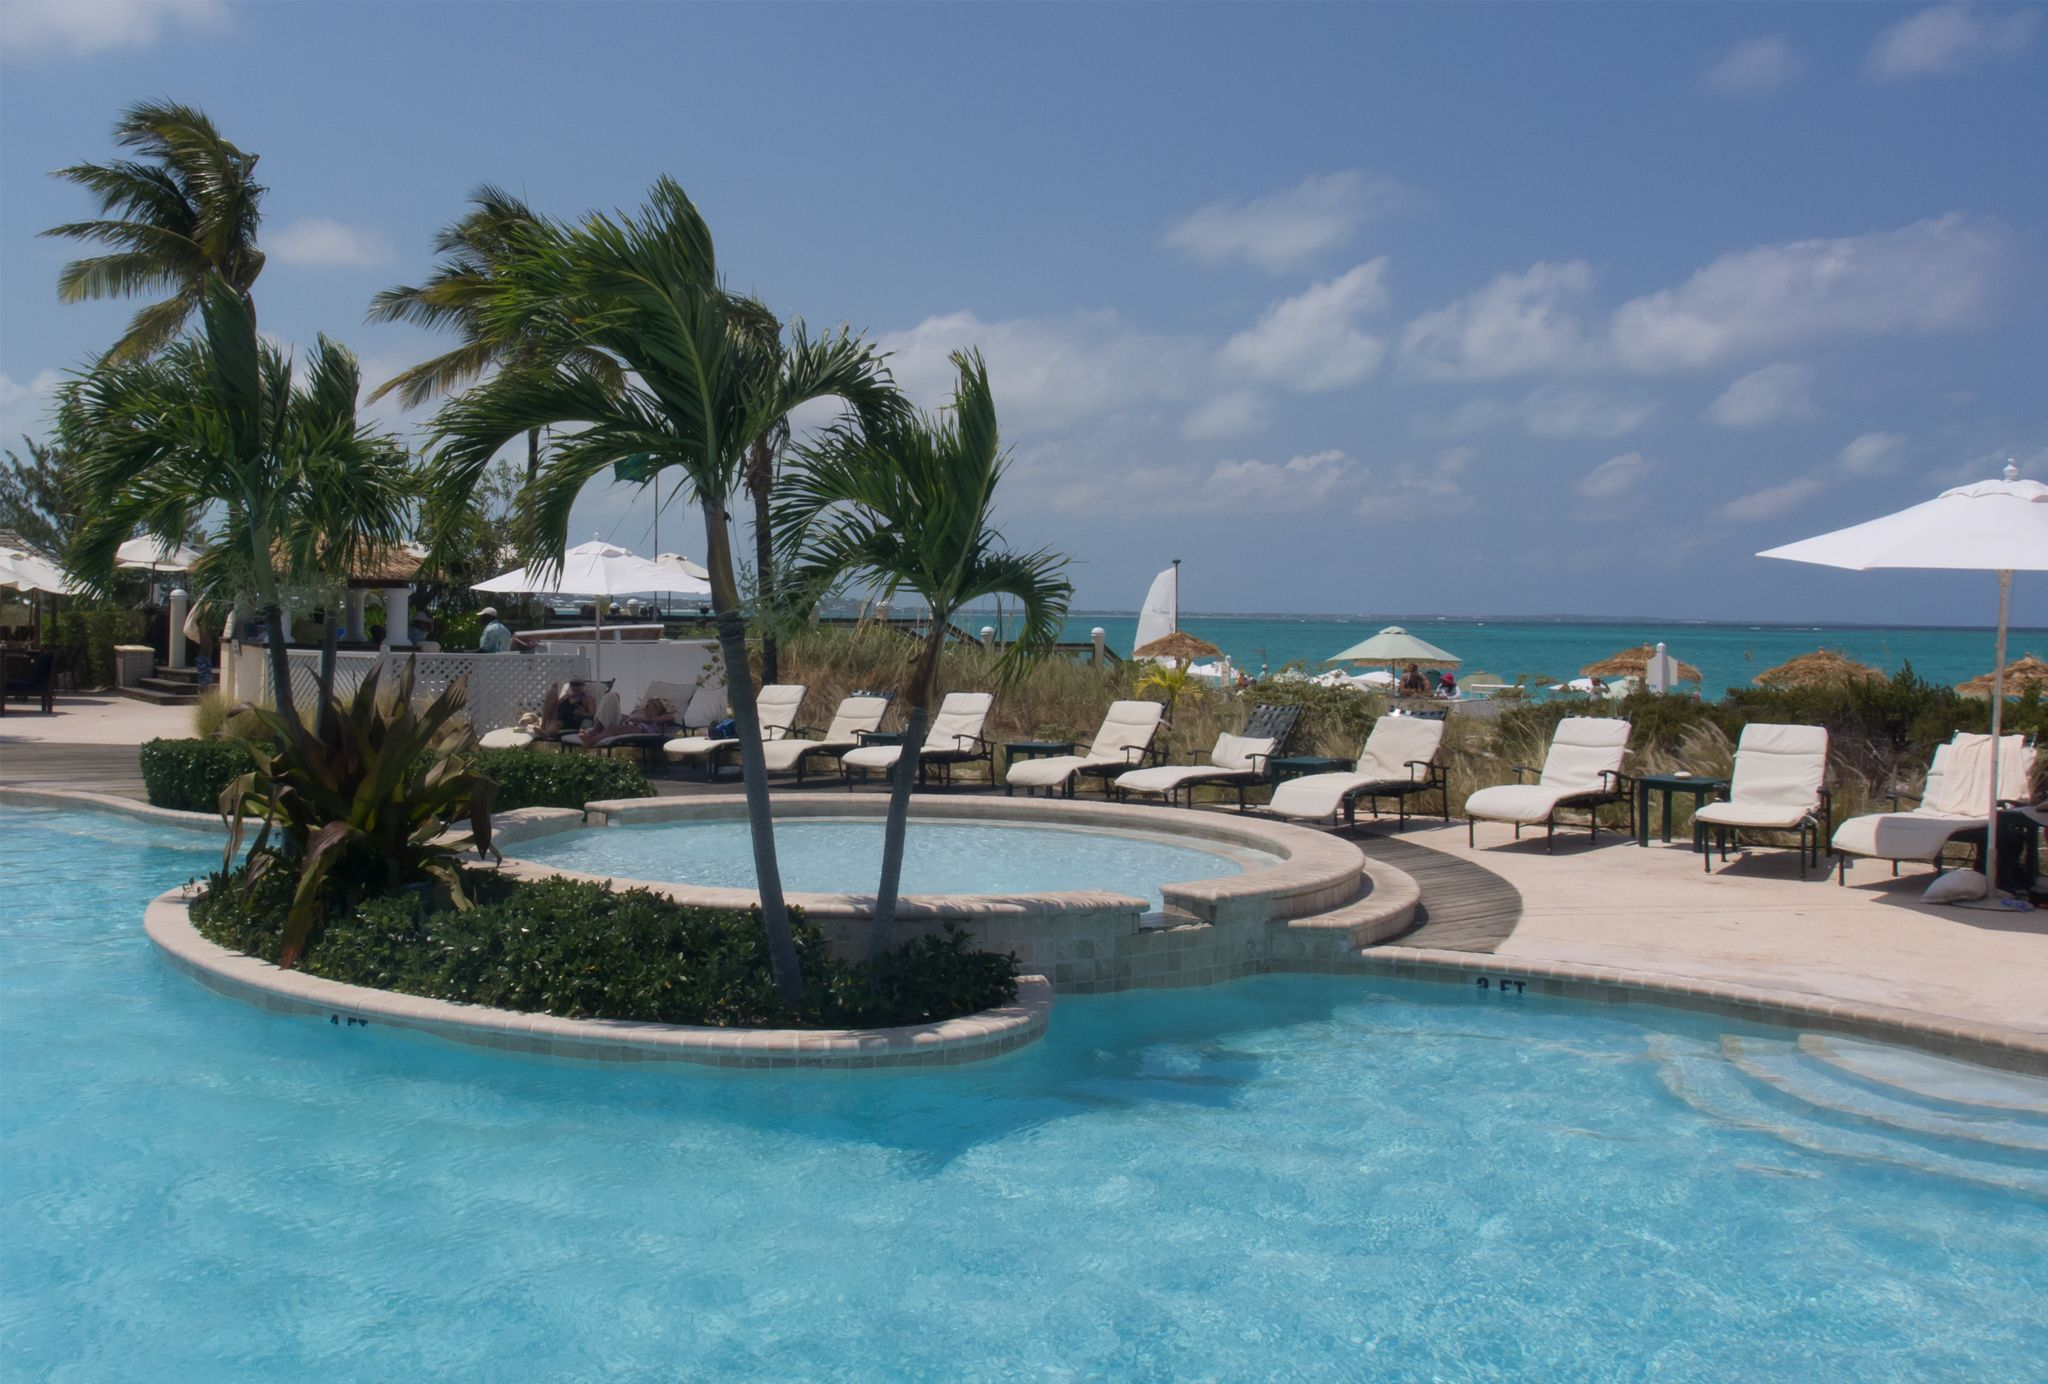 The Sands at Grace Bay on Turks and Caicos